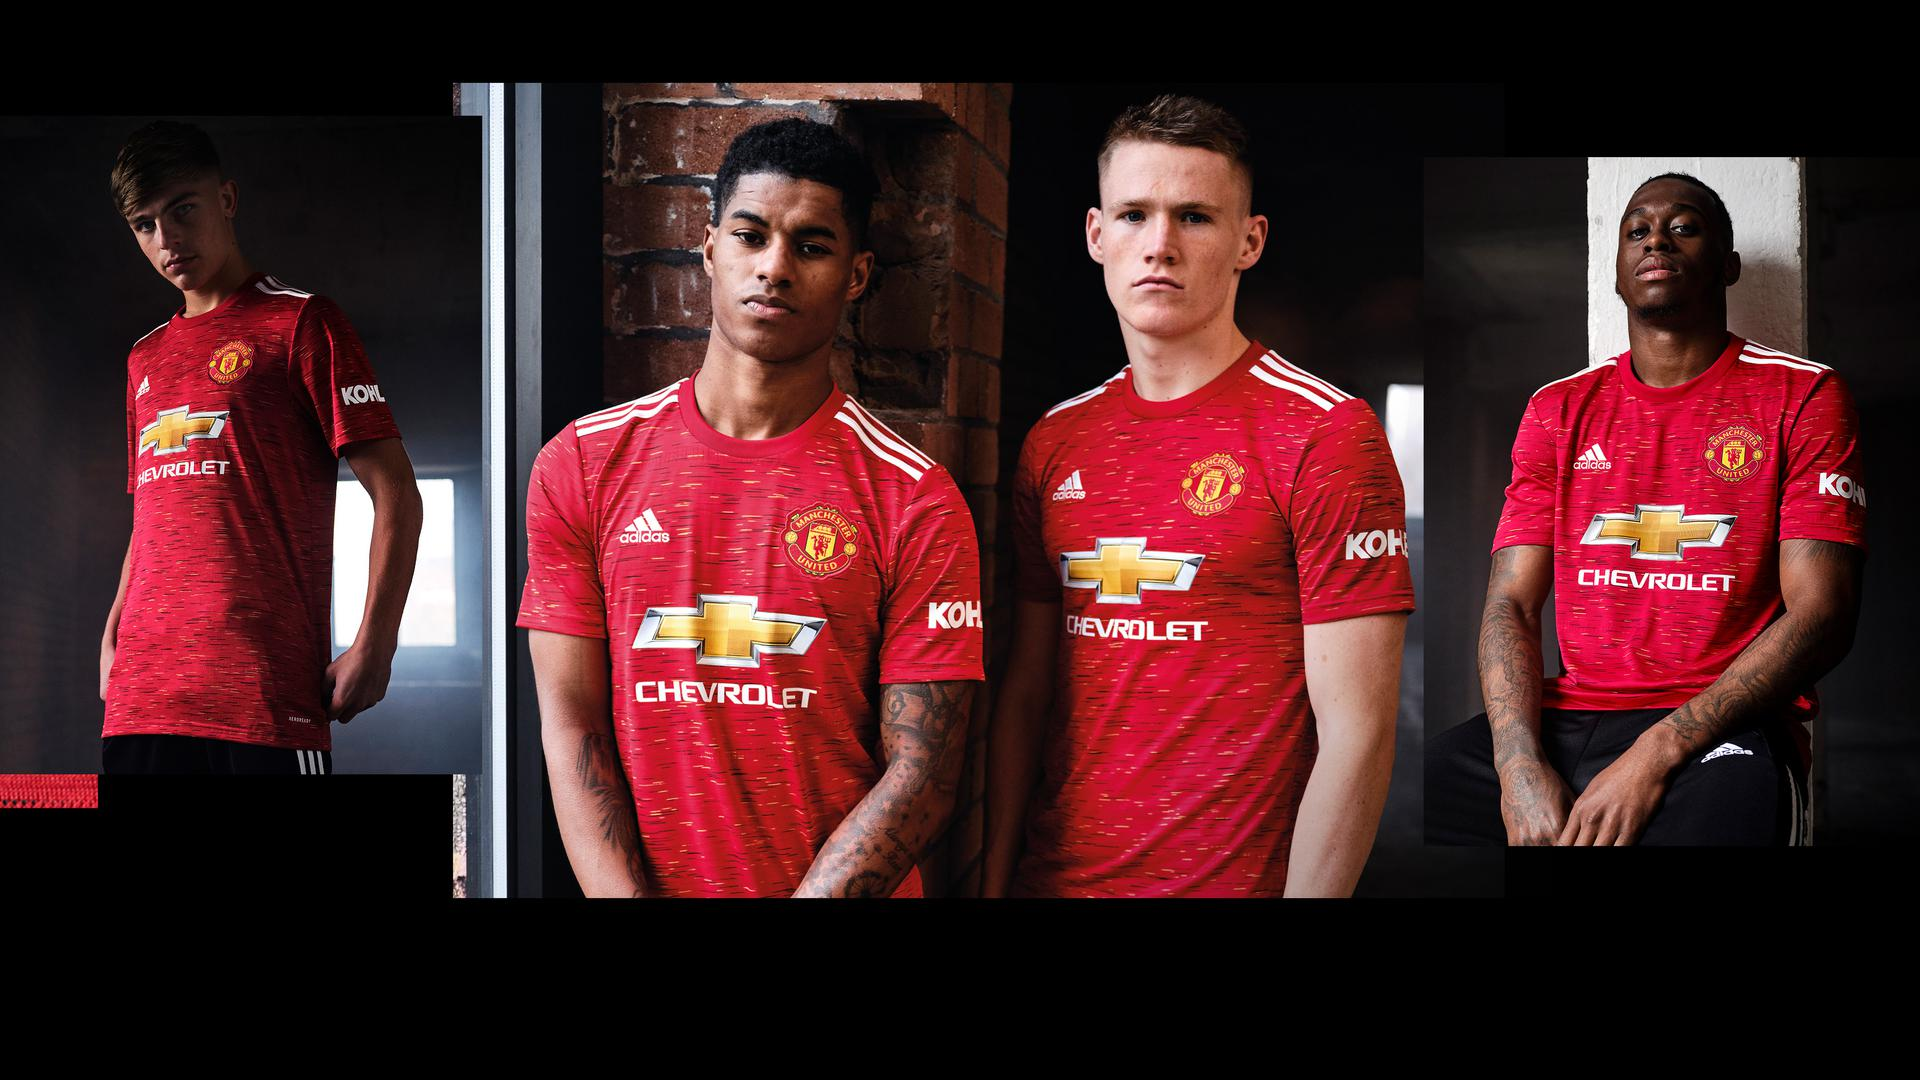 The Best Manchester United Players Wallpaper 2020